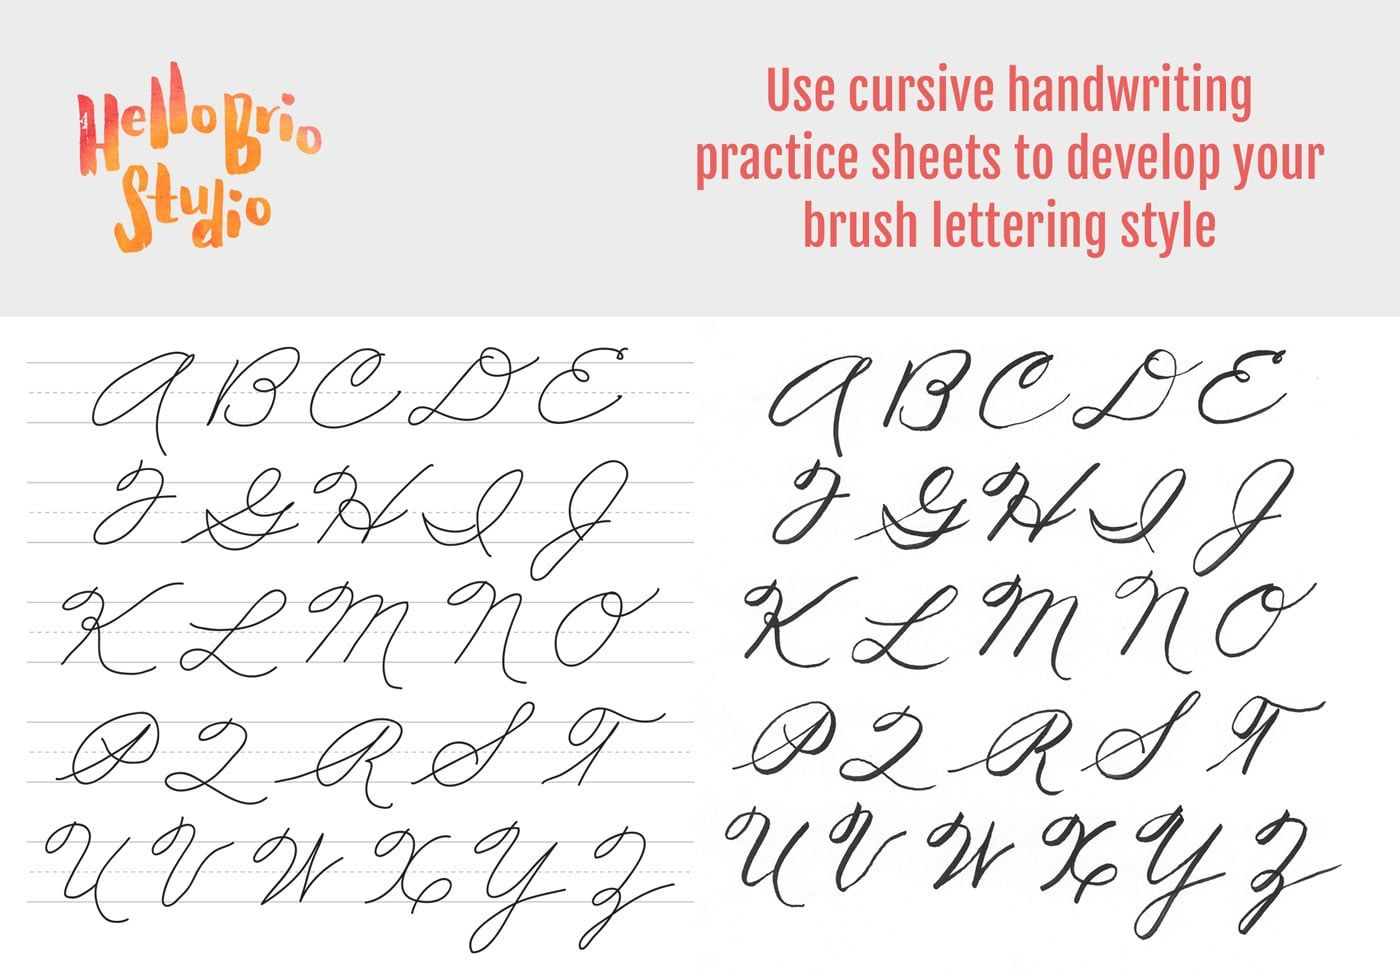 Practice Brush Lettering With Cursive Handwriting